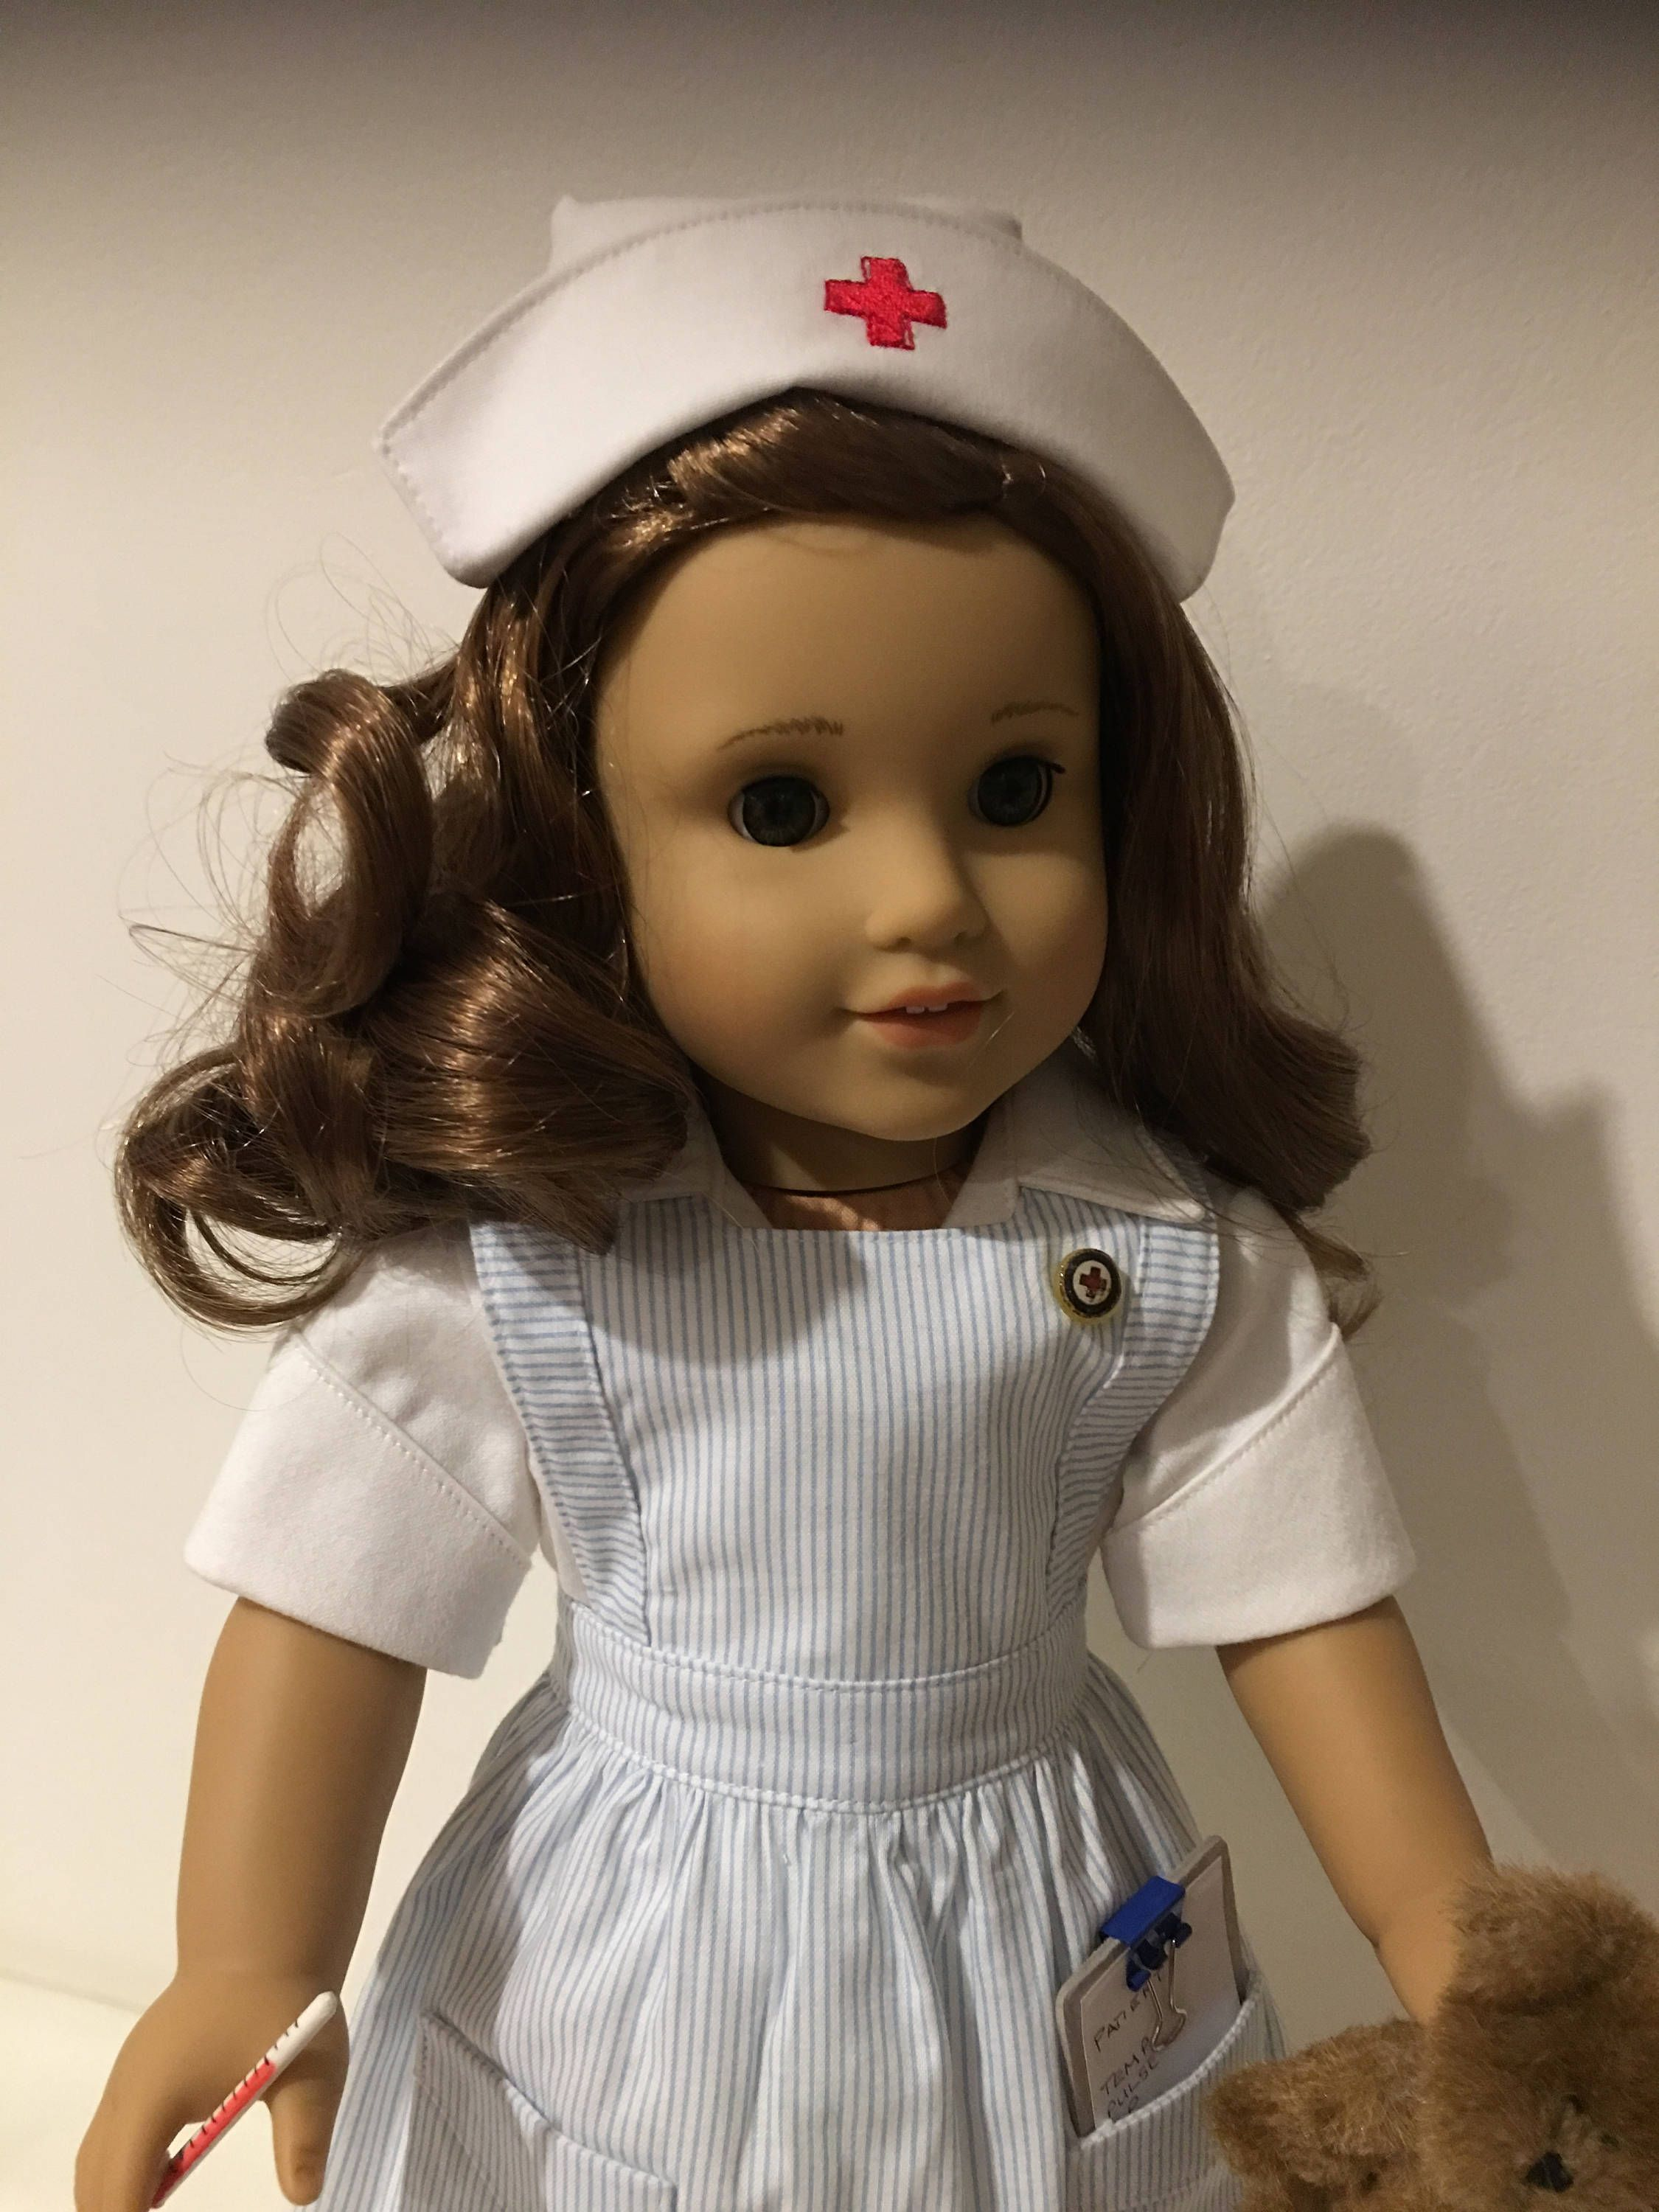 Vintage Style Nurse outfit fits American girl dolls   Taurina y Patrones